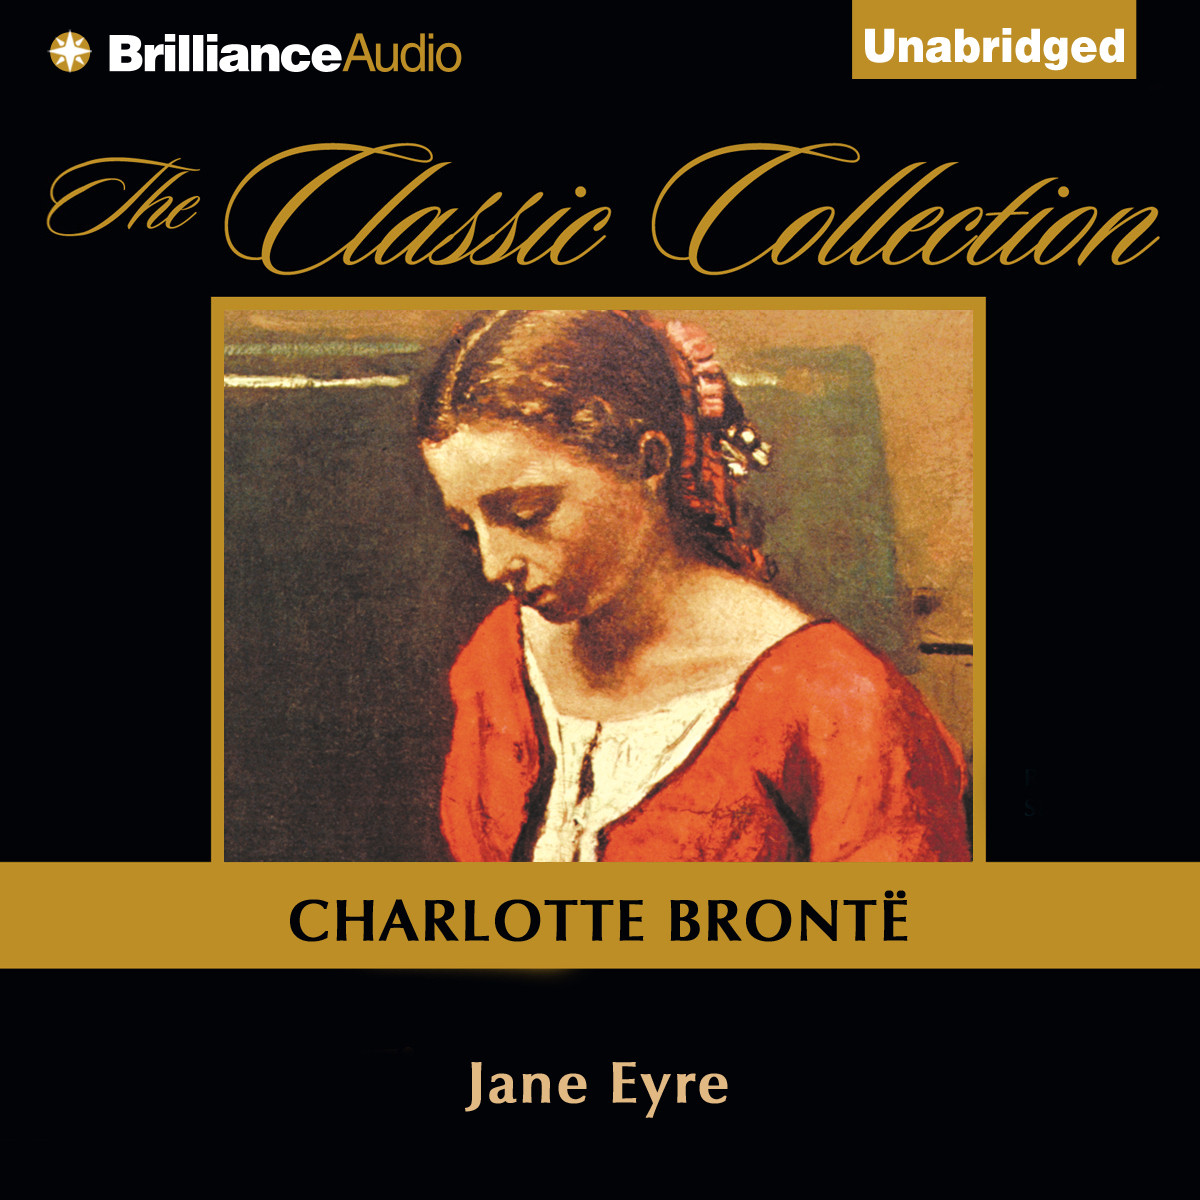 an analysis of the theme of violence in jane eyre by charlotte bronte Ap english iii charlotte bronte wrote jane eyre jane eyre essay jane eyre by charlotte brontë essay jane eyre journal entries explanation: violence and.